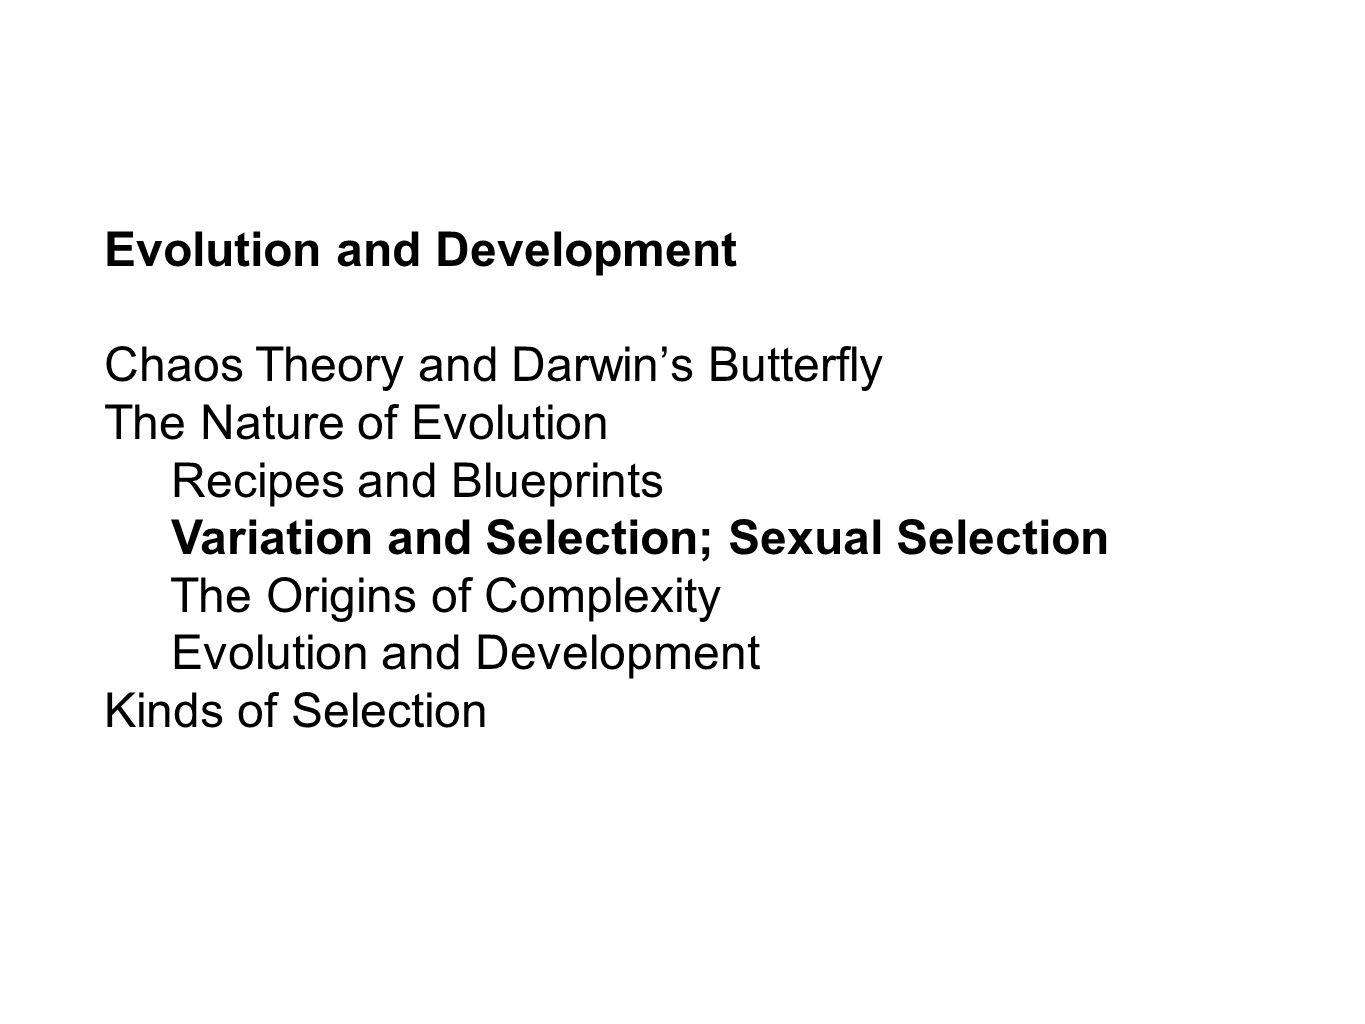 Evolution and Development Chaos Theory and Darwins Butterfly The Nature of Evolution Recipes and Blueprints Variation and Selection; Sexual Selection